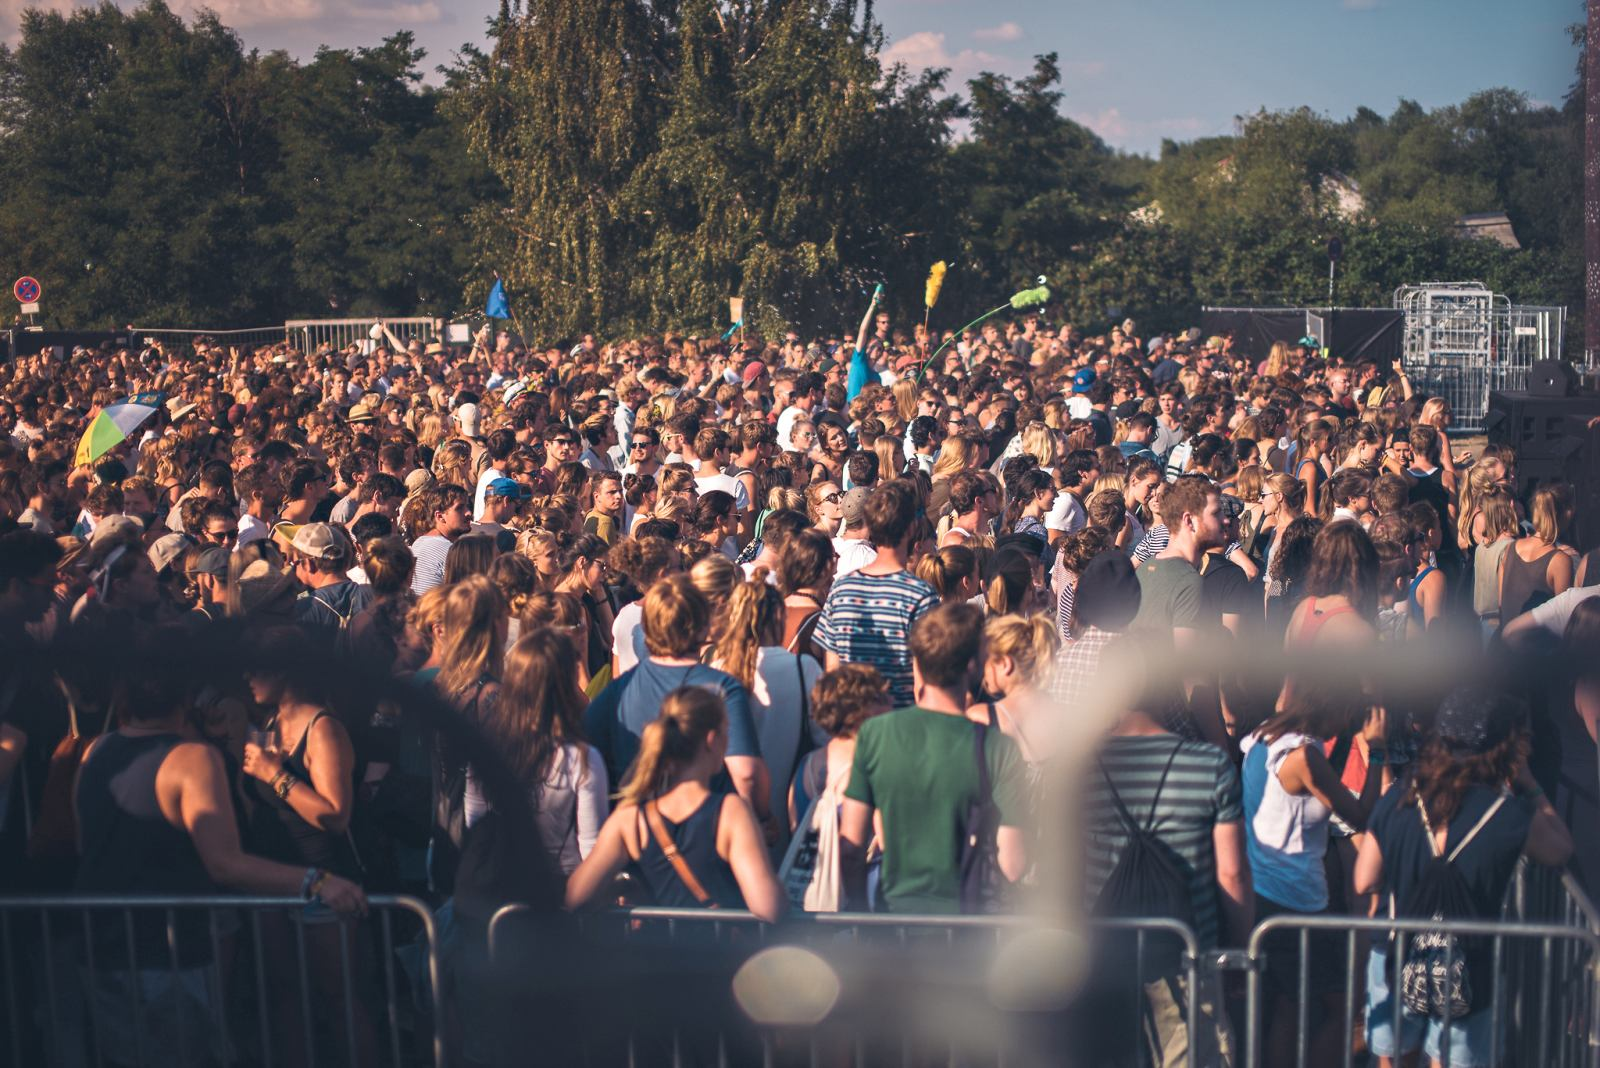 043 ms dockville 2015 crowd - MS Dockville 2015